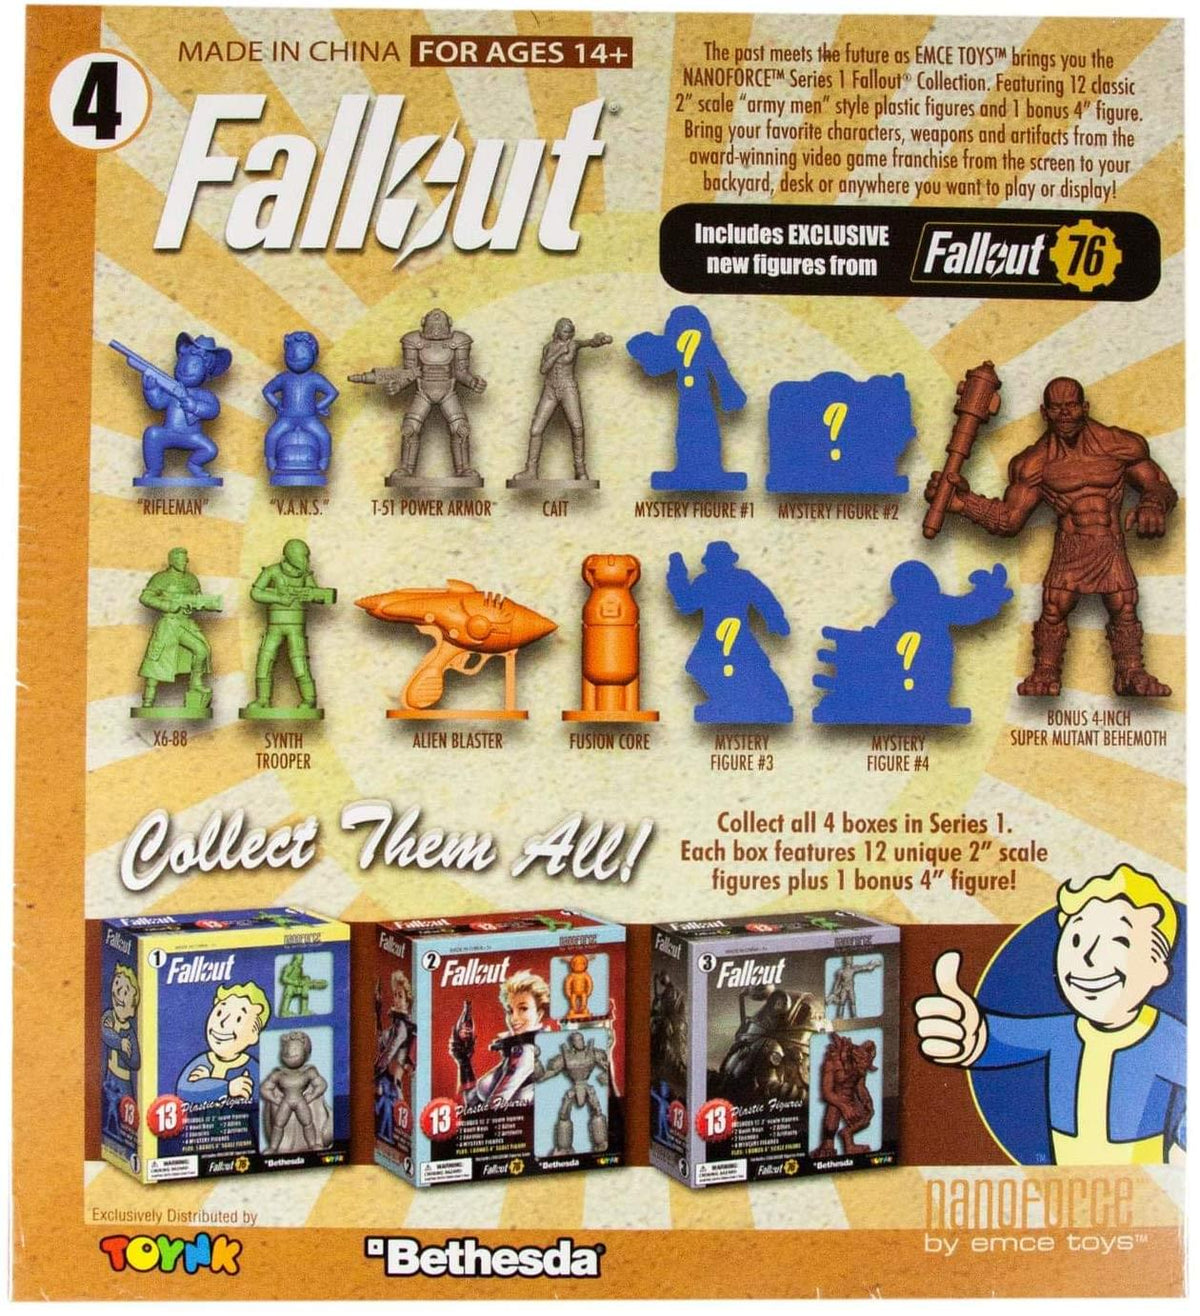 Fallout Nanoforce S1 Army Builder Figures - Boxed Version 4